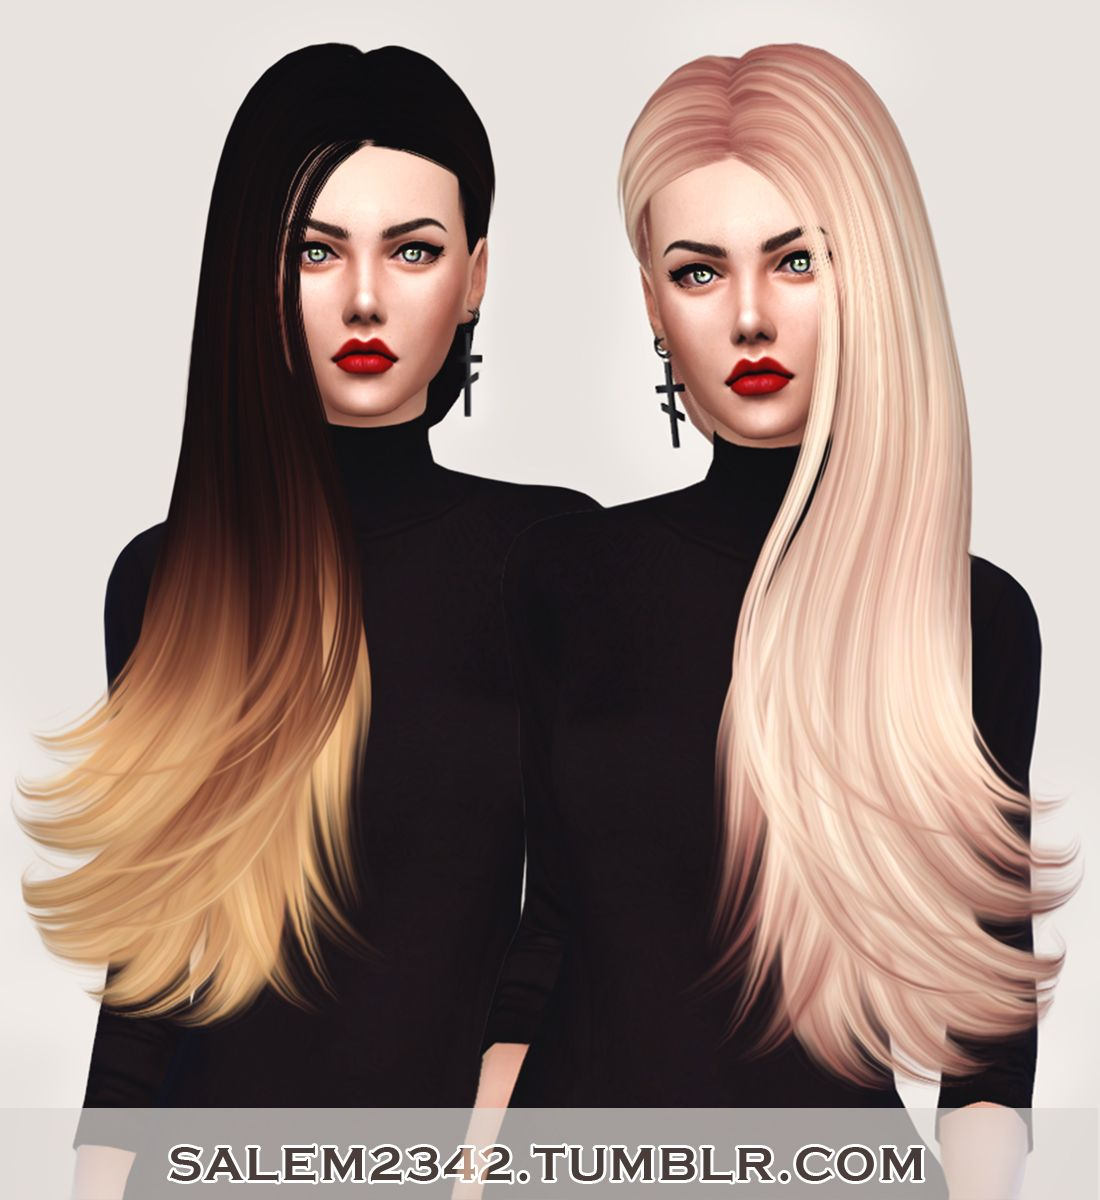 206 best images about sims 3 on pinterest dots sims 4 and warm - Salem2342 Skysims Hair 259 Retexture Sims 4 Hairs Http Sims4hairs